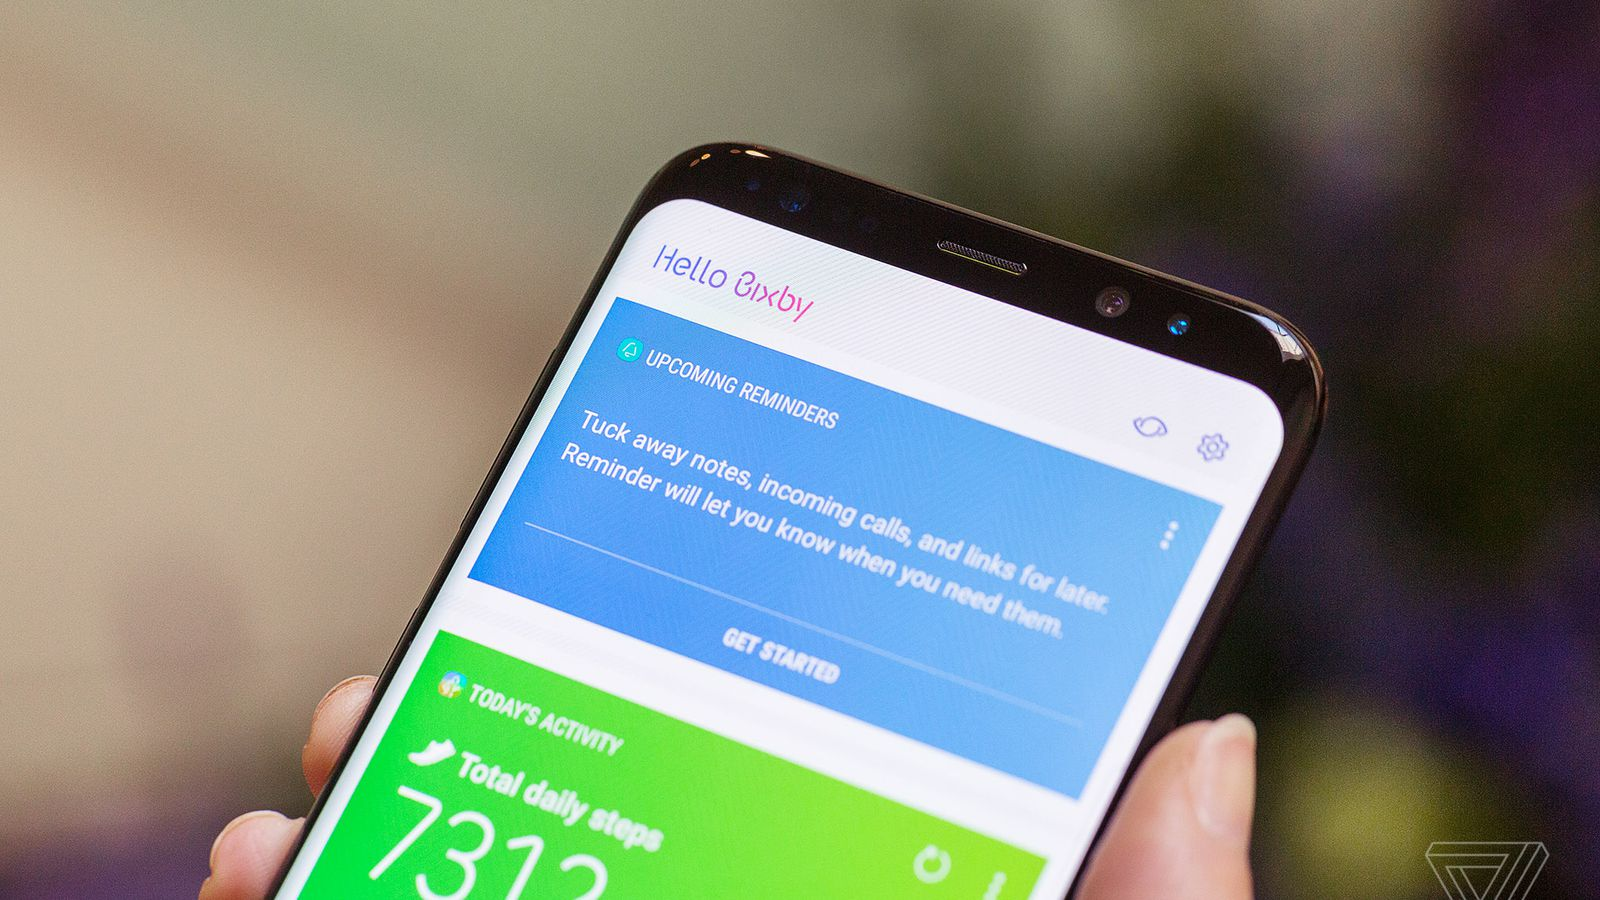 Samsung's Bixby is now available in more than 200 countries including the UK and Canada